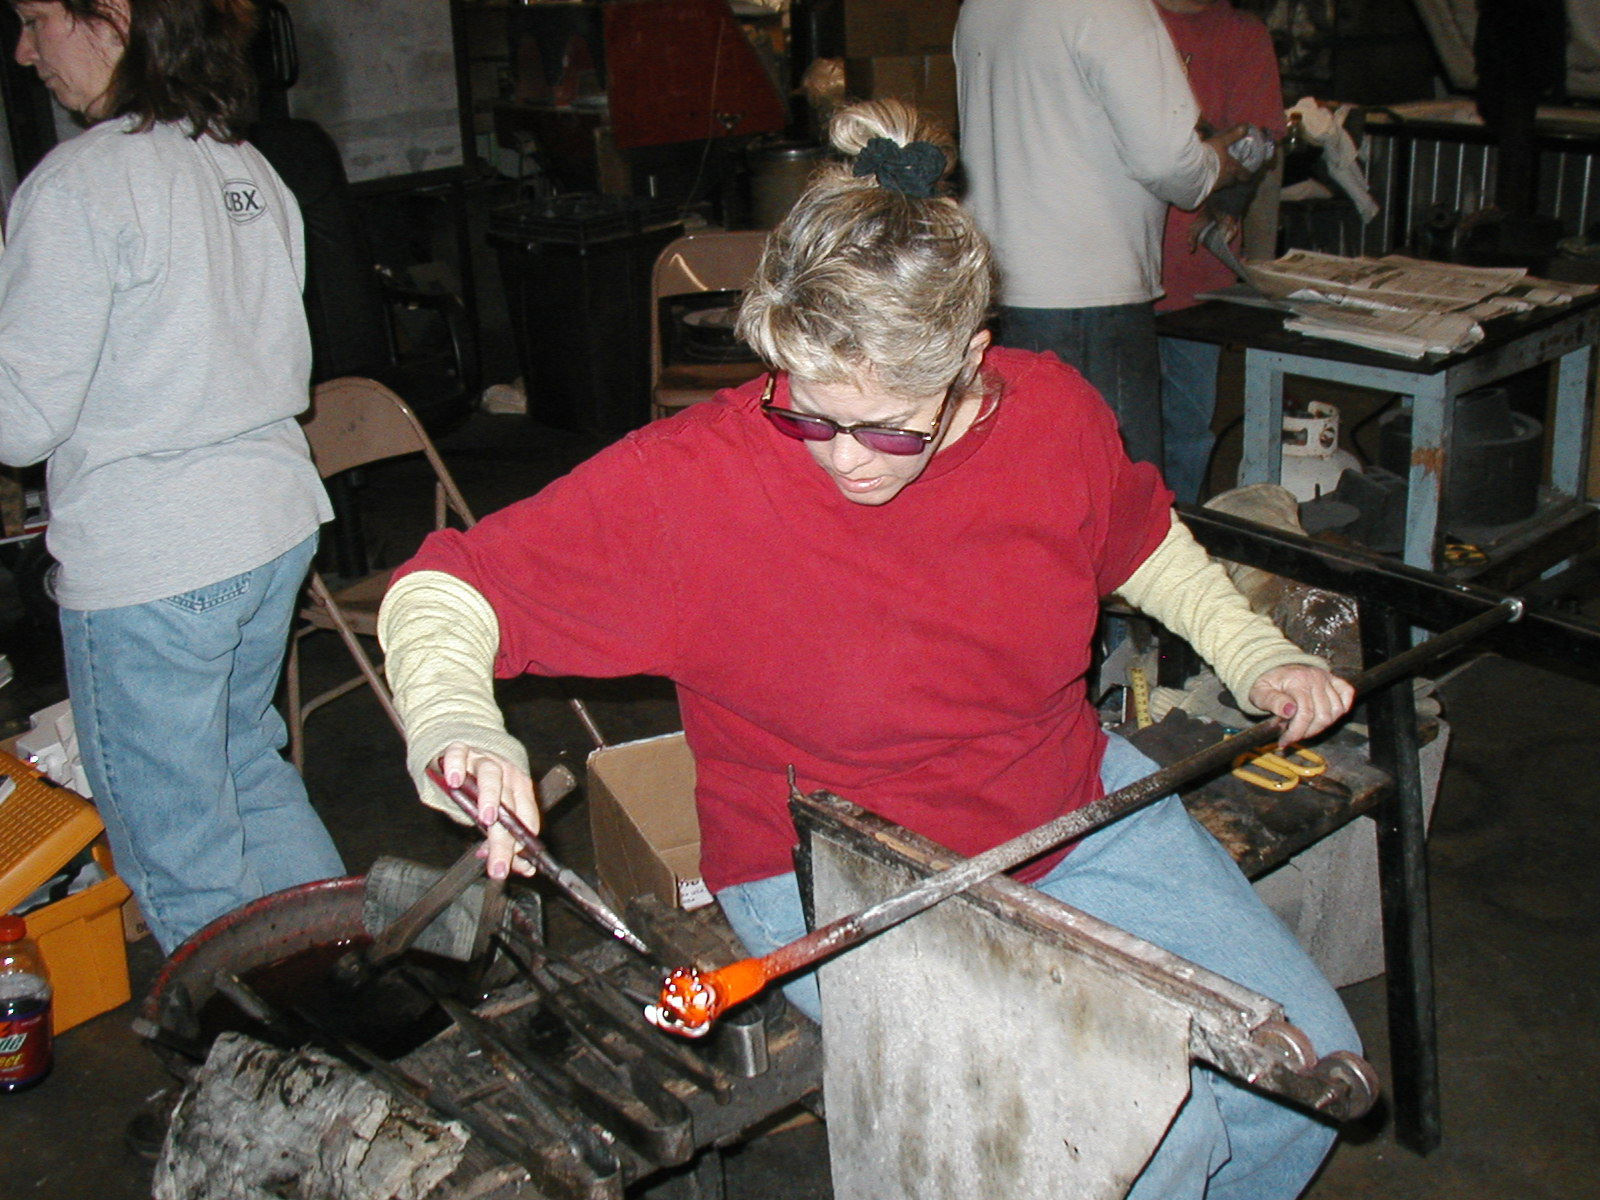 Glassblower.Info - Joel Bless Glasslight Glassblowing class January 18 2004 #166